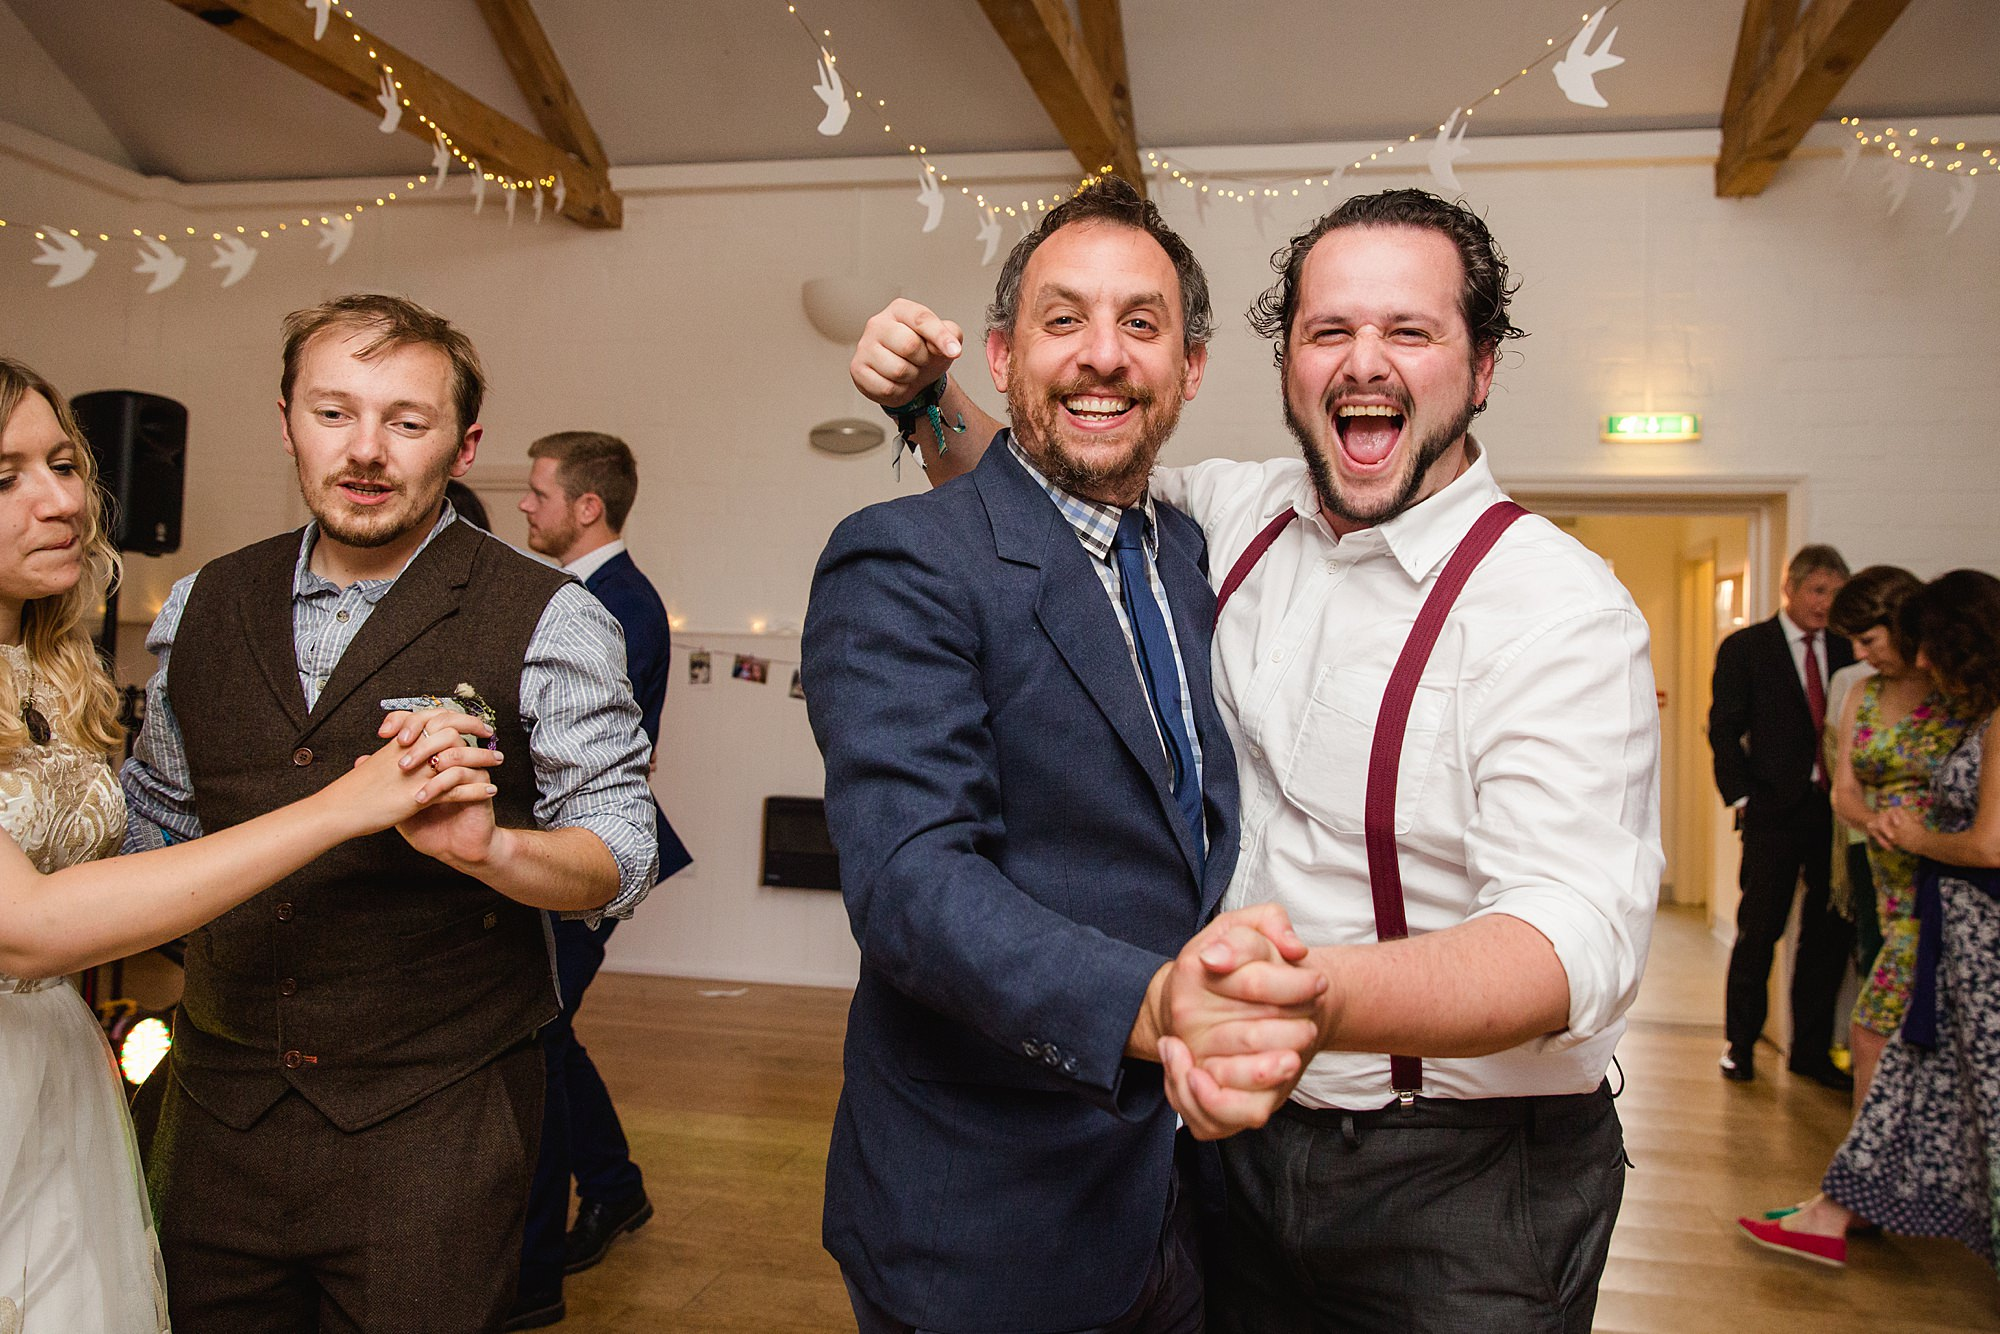 Fun village hall wedding groomsmen laughing during ceilidh